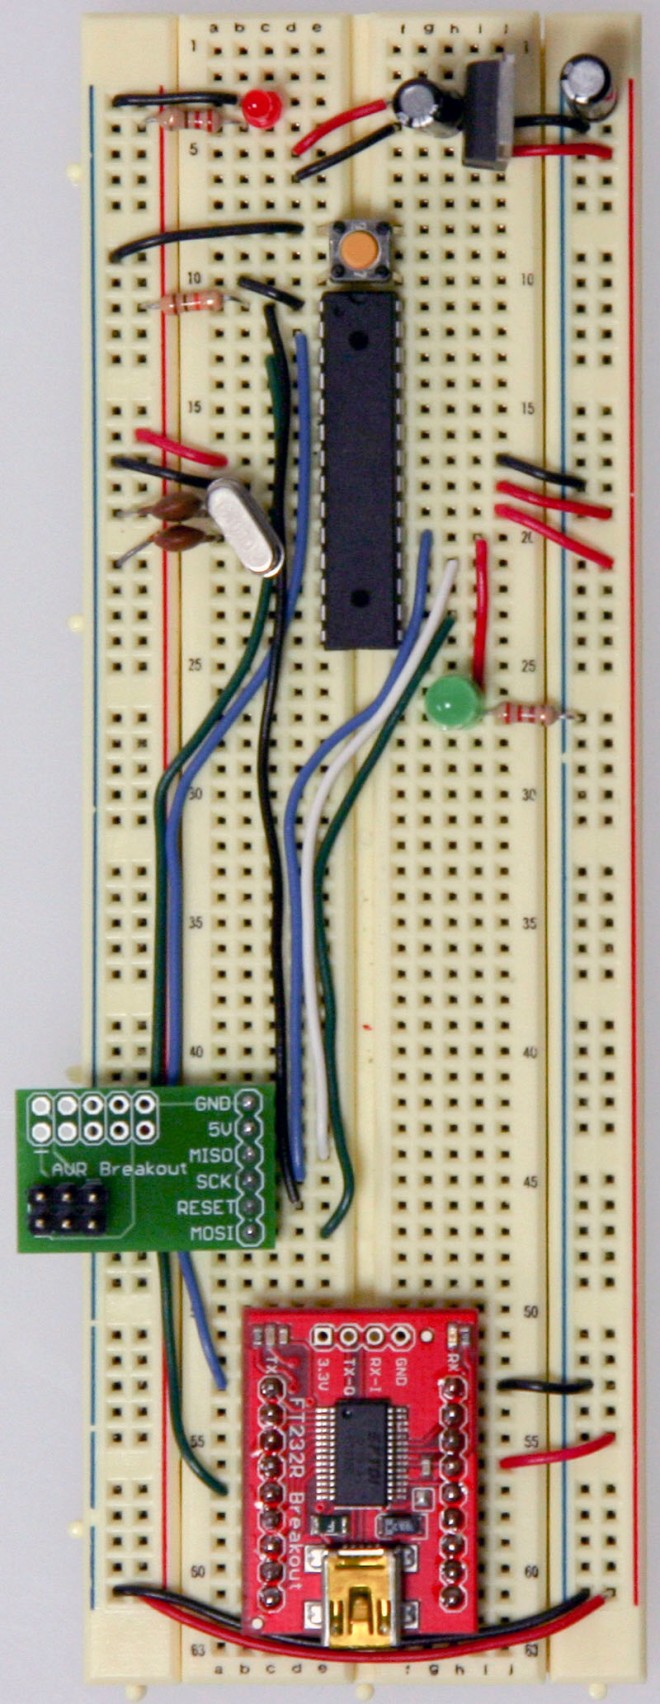 Arduino Standalone with Pin 16 incorrectly wired